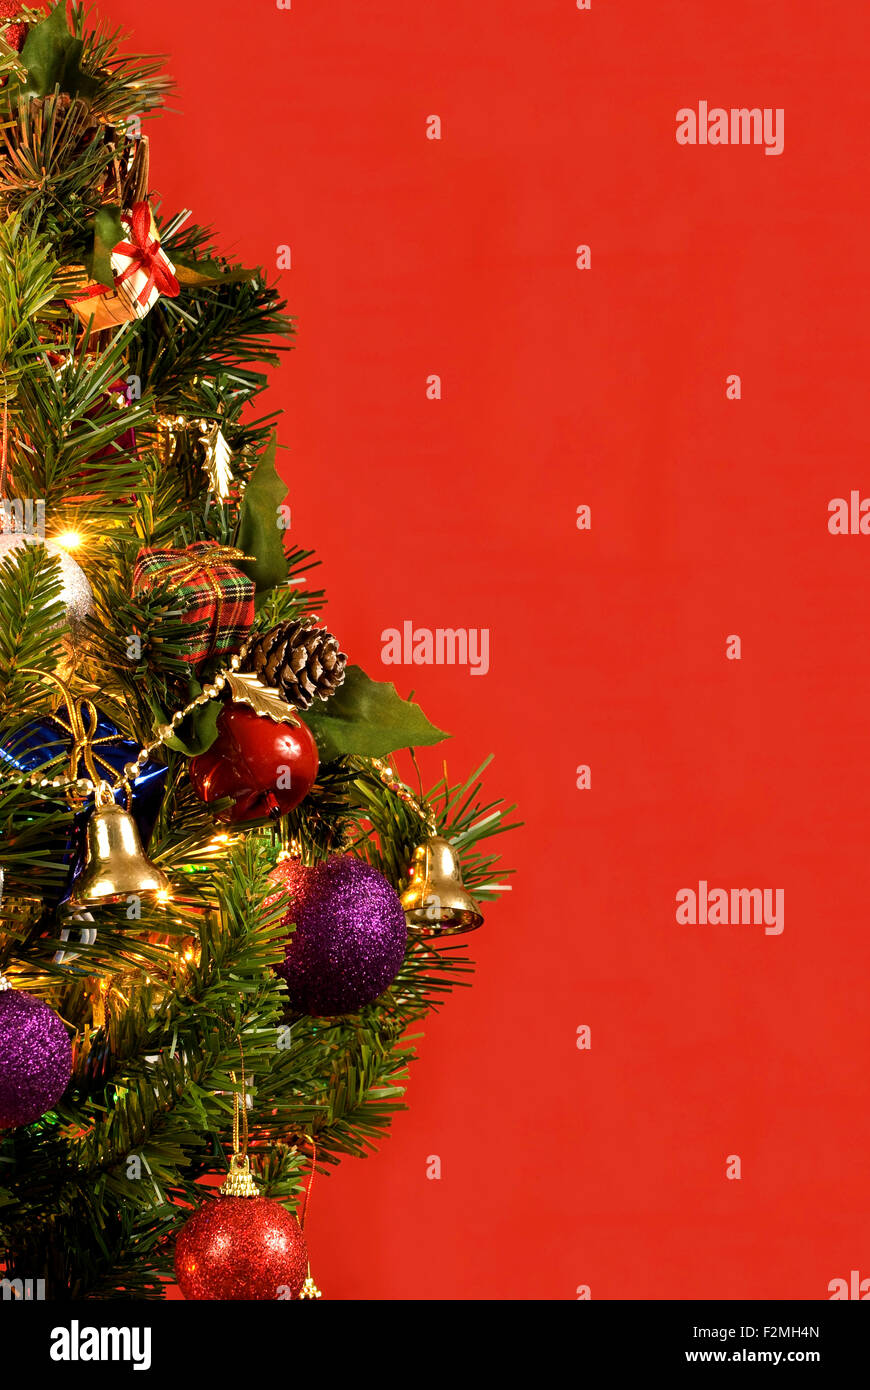 Christmas Tree With Lights And Ornaments On Red Background Vertical